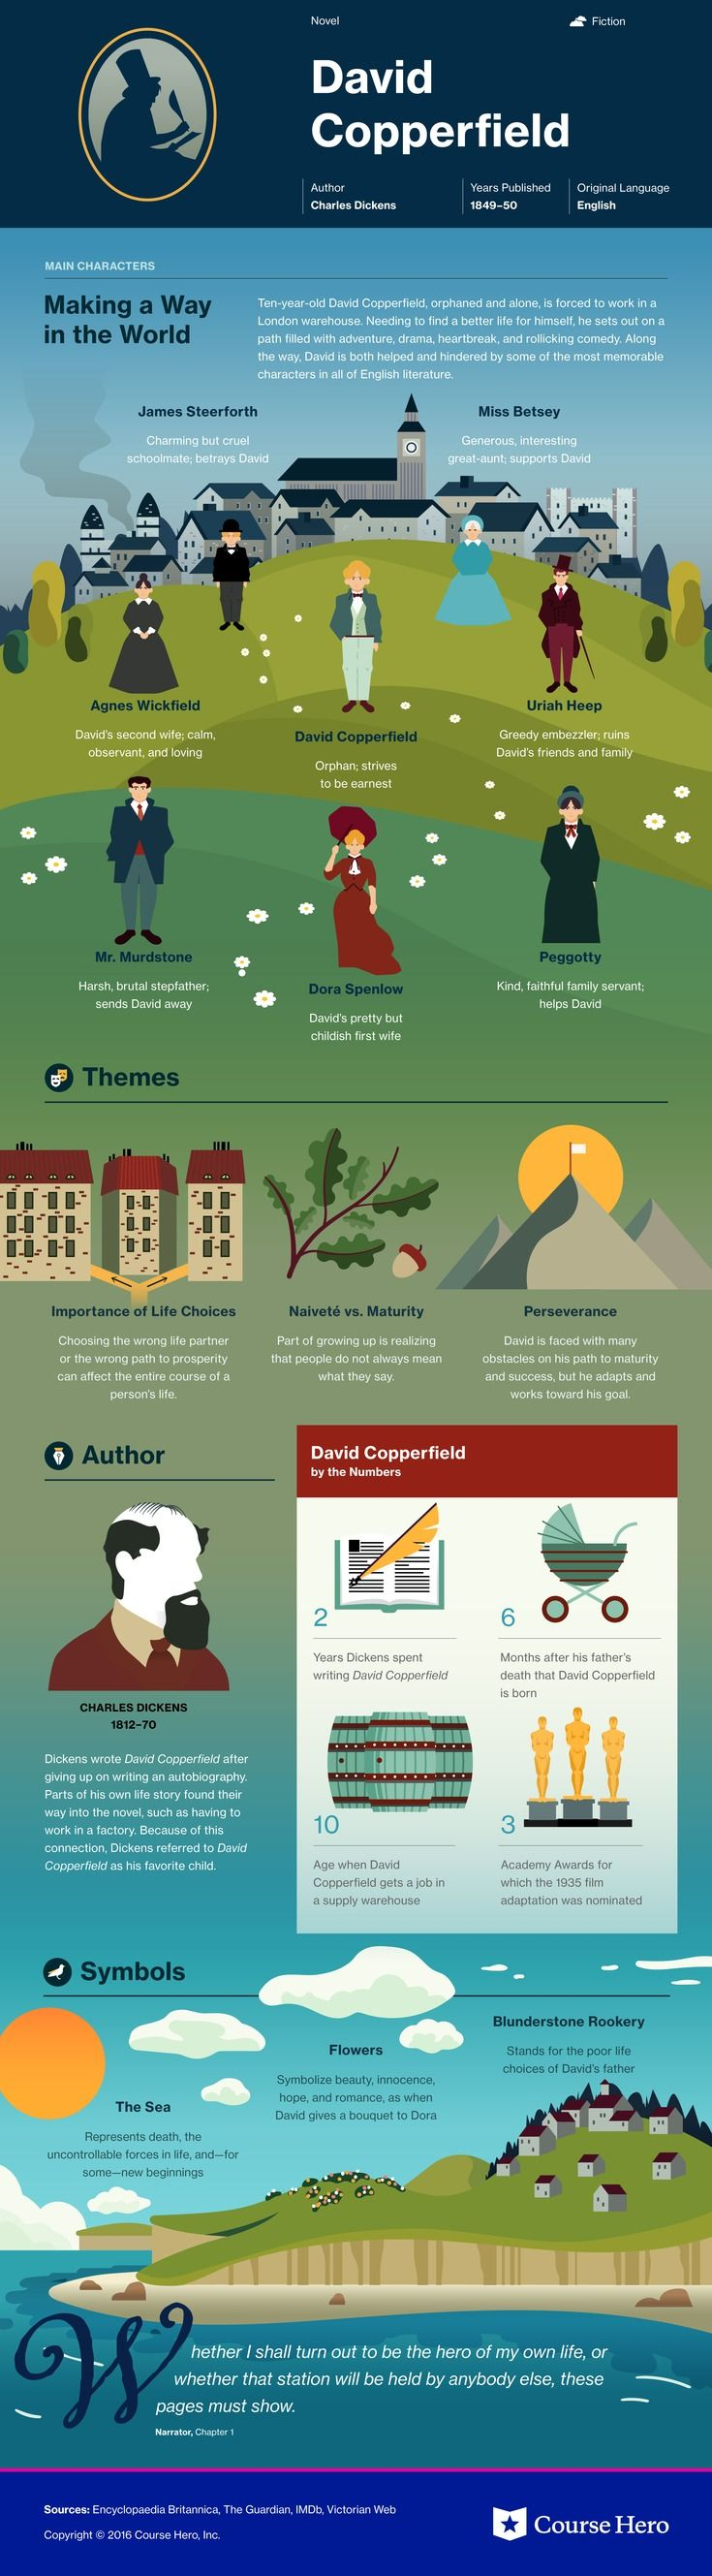 david copperfield infographic course hero literature learn about the different symbols such as blunderstone rookery in david copperfield and how they contribute to the plot of the book